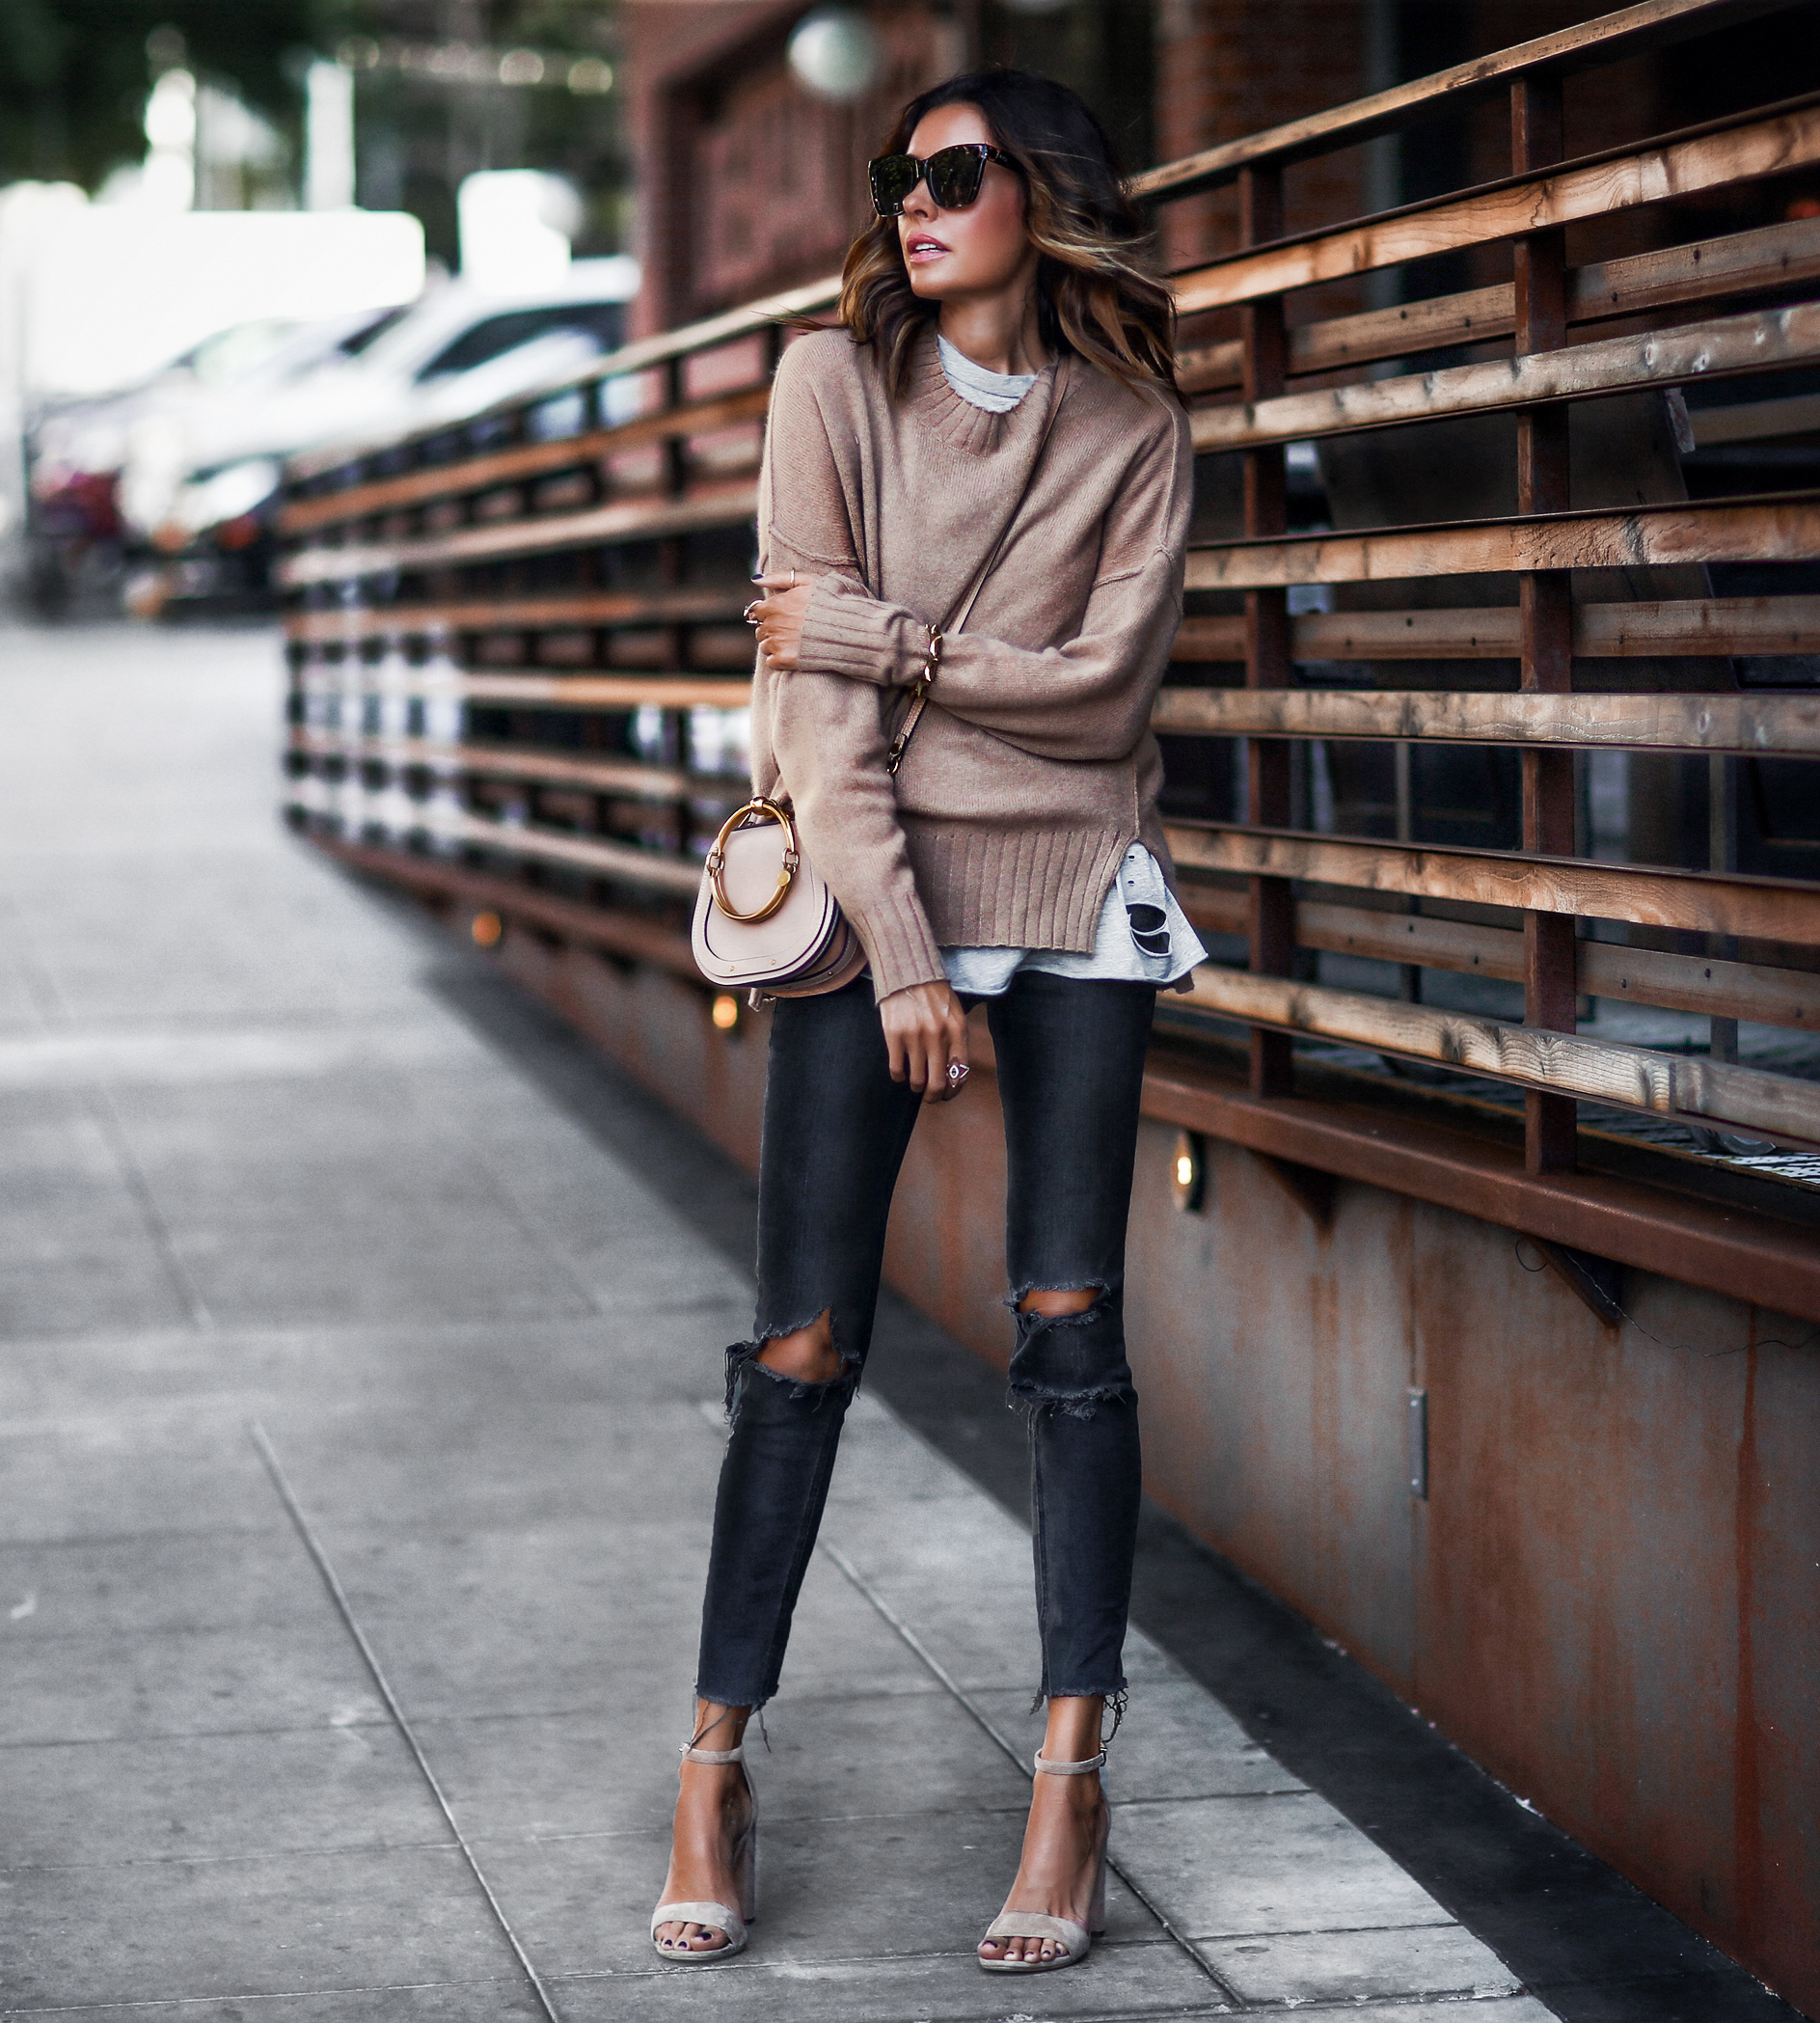 cashmere camel sweater, distressed skinny jeans, nude sandals, chloe bag